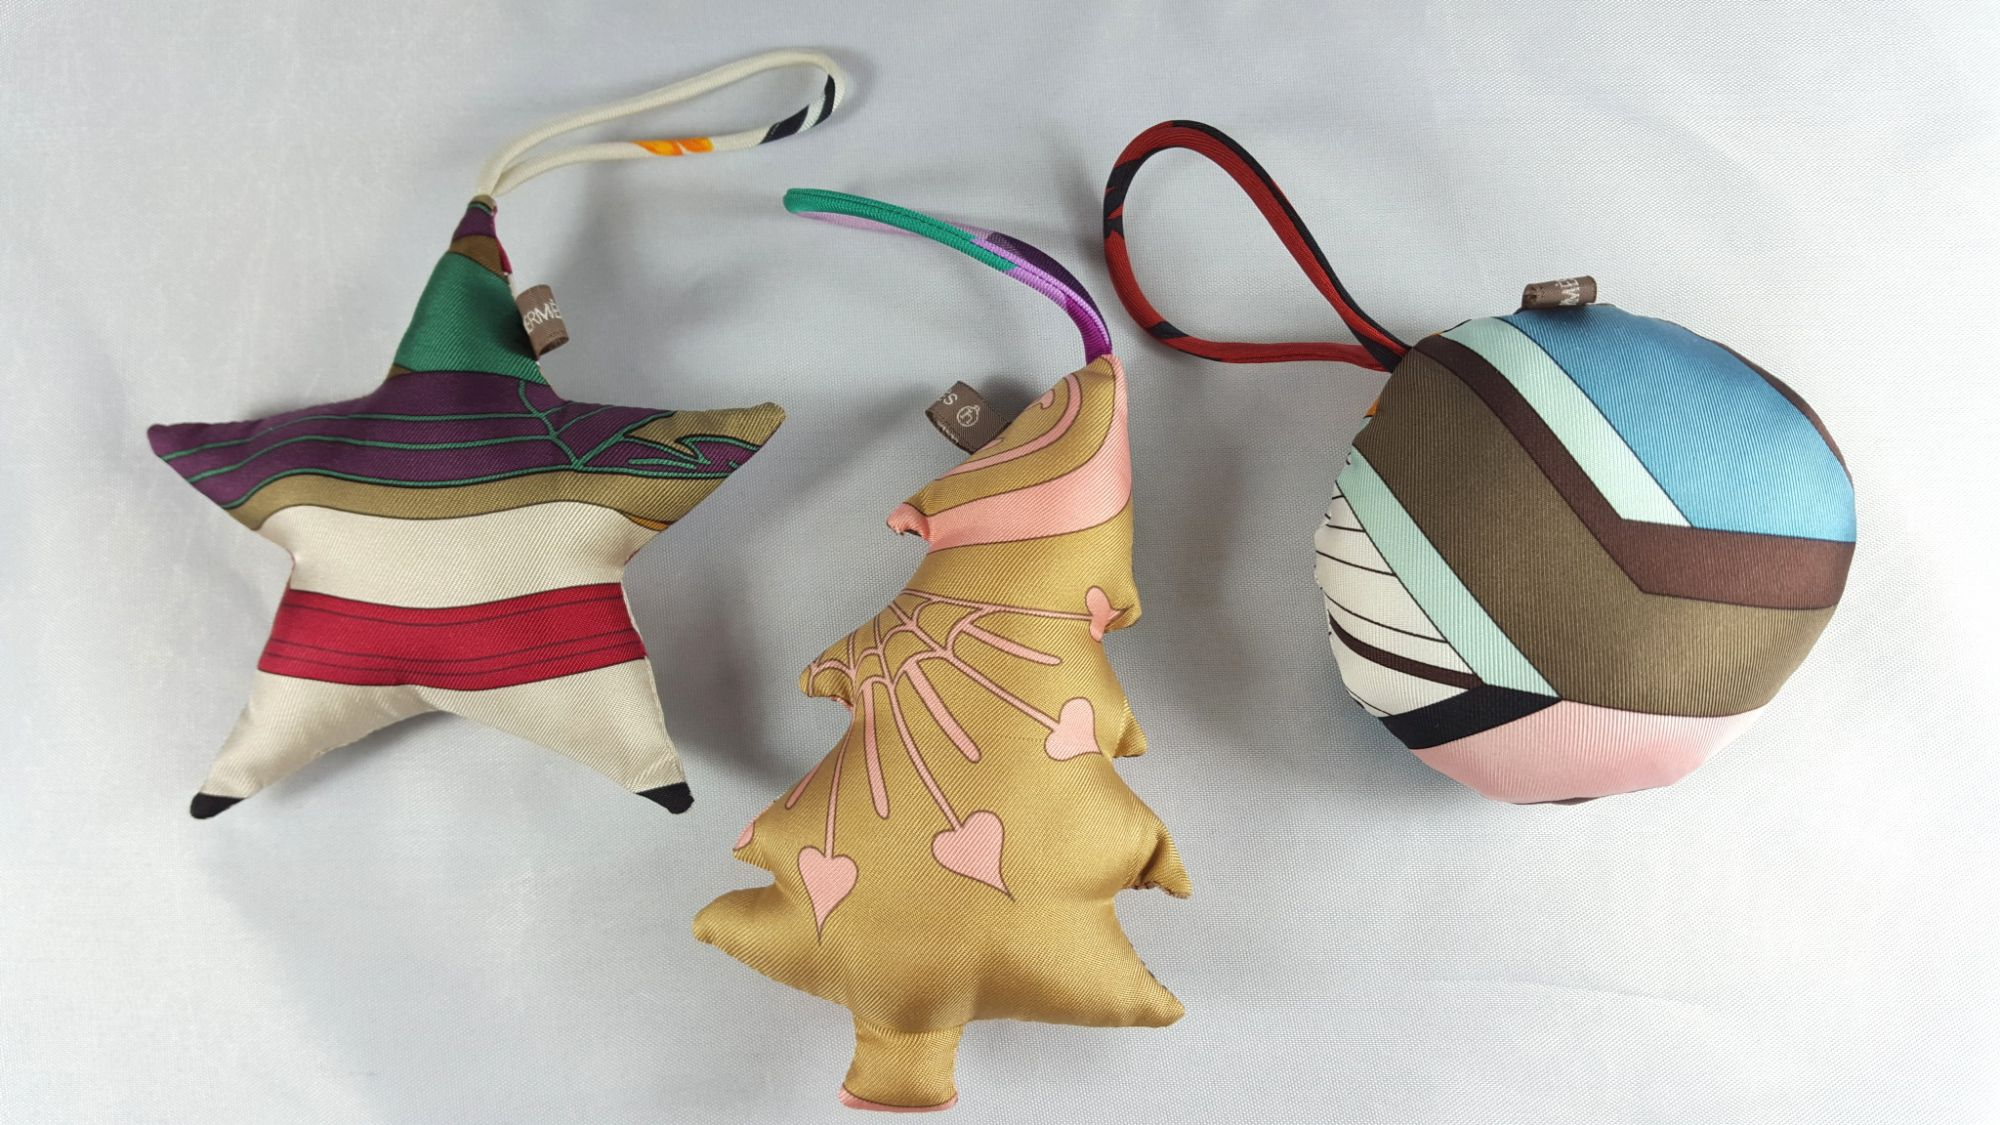 Set of 3 Hermès Christmas tree ornament or bag charm